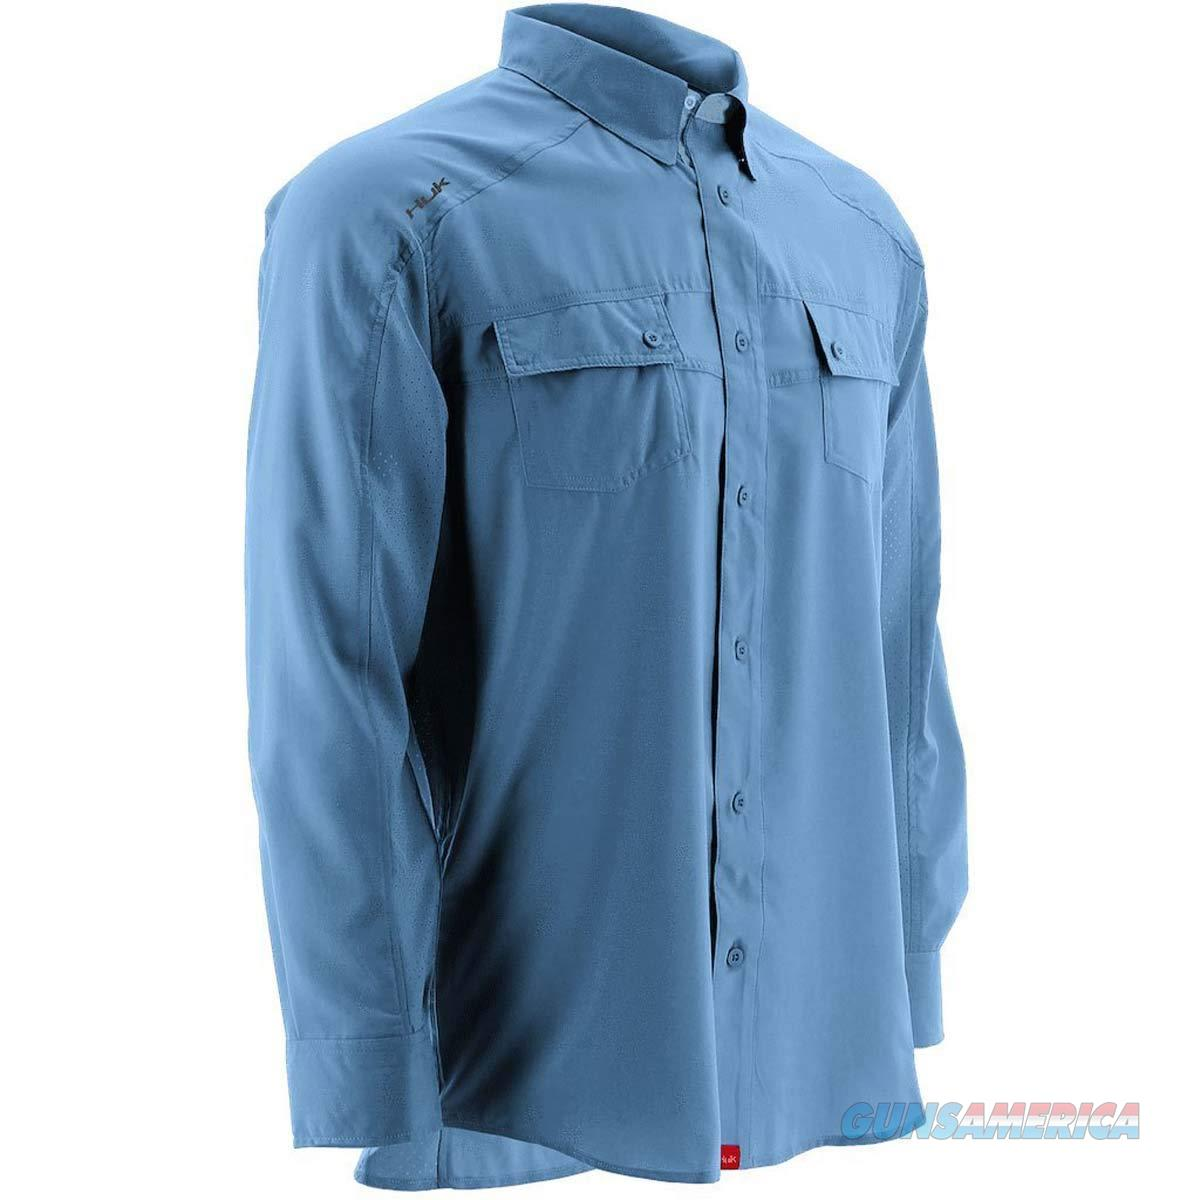 Huk Next Level Button Up Blue Medium  Non-Guns > Hunting Clothing and Equipment > Clothing > Shirts